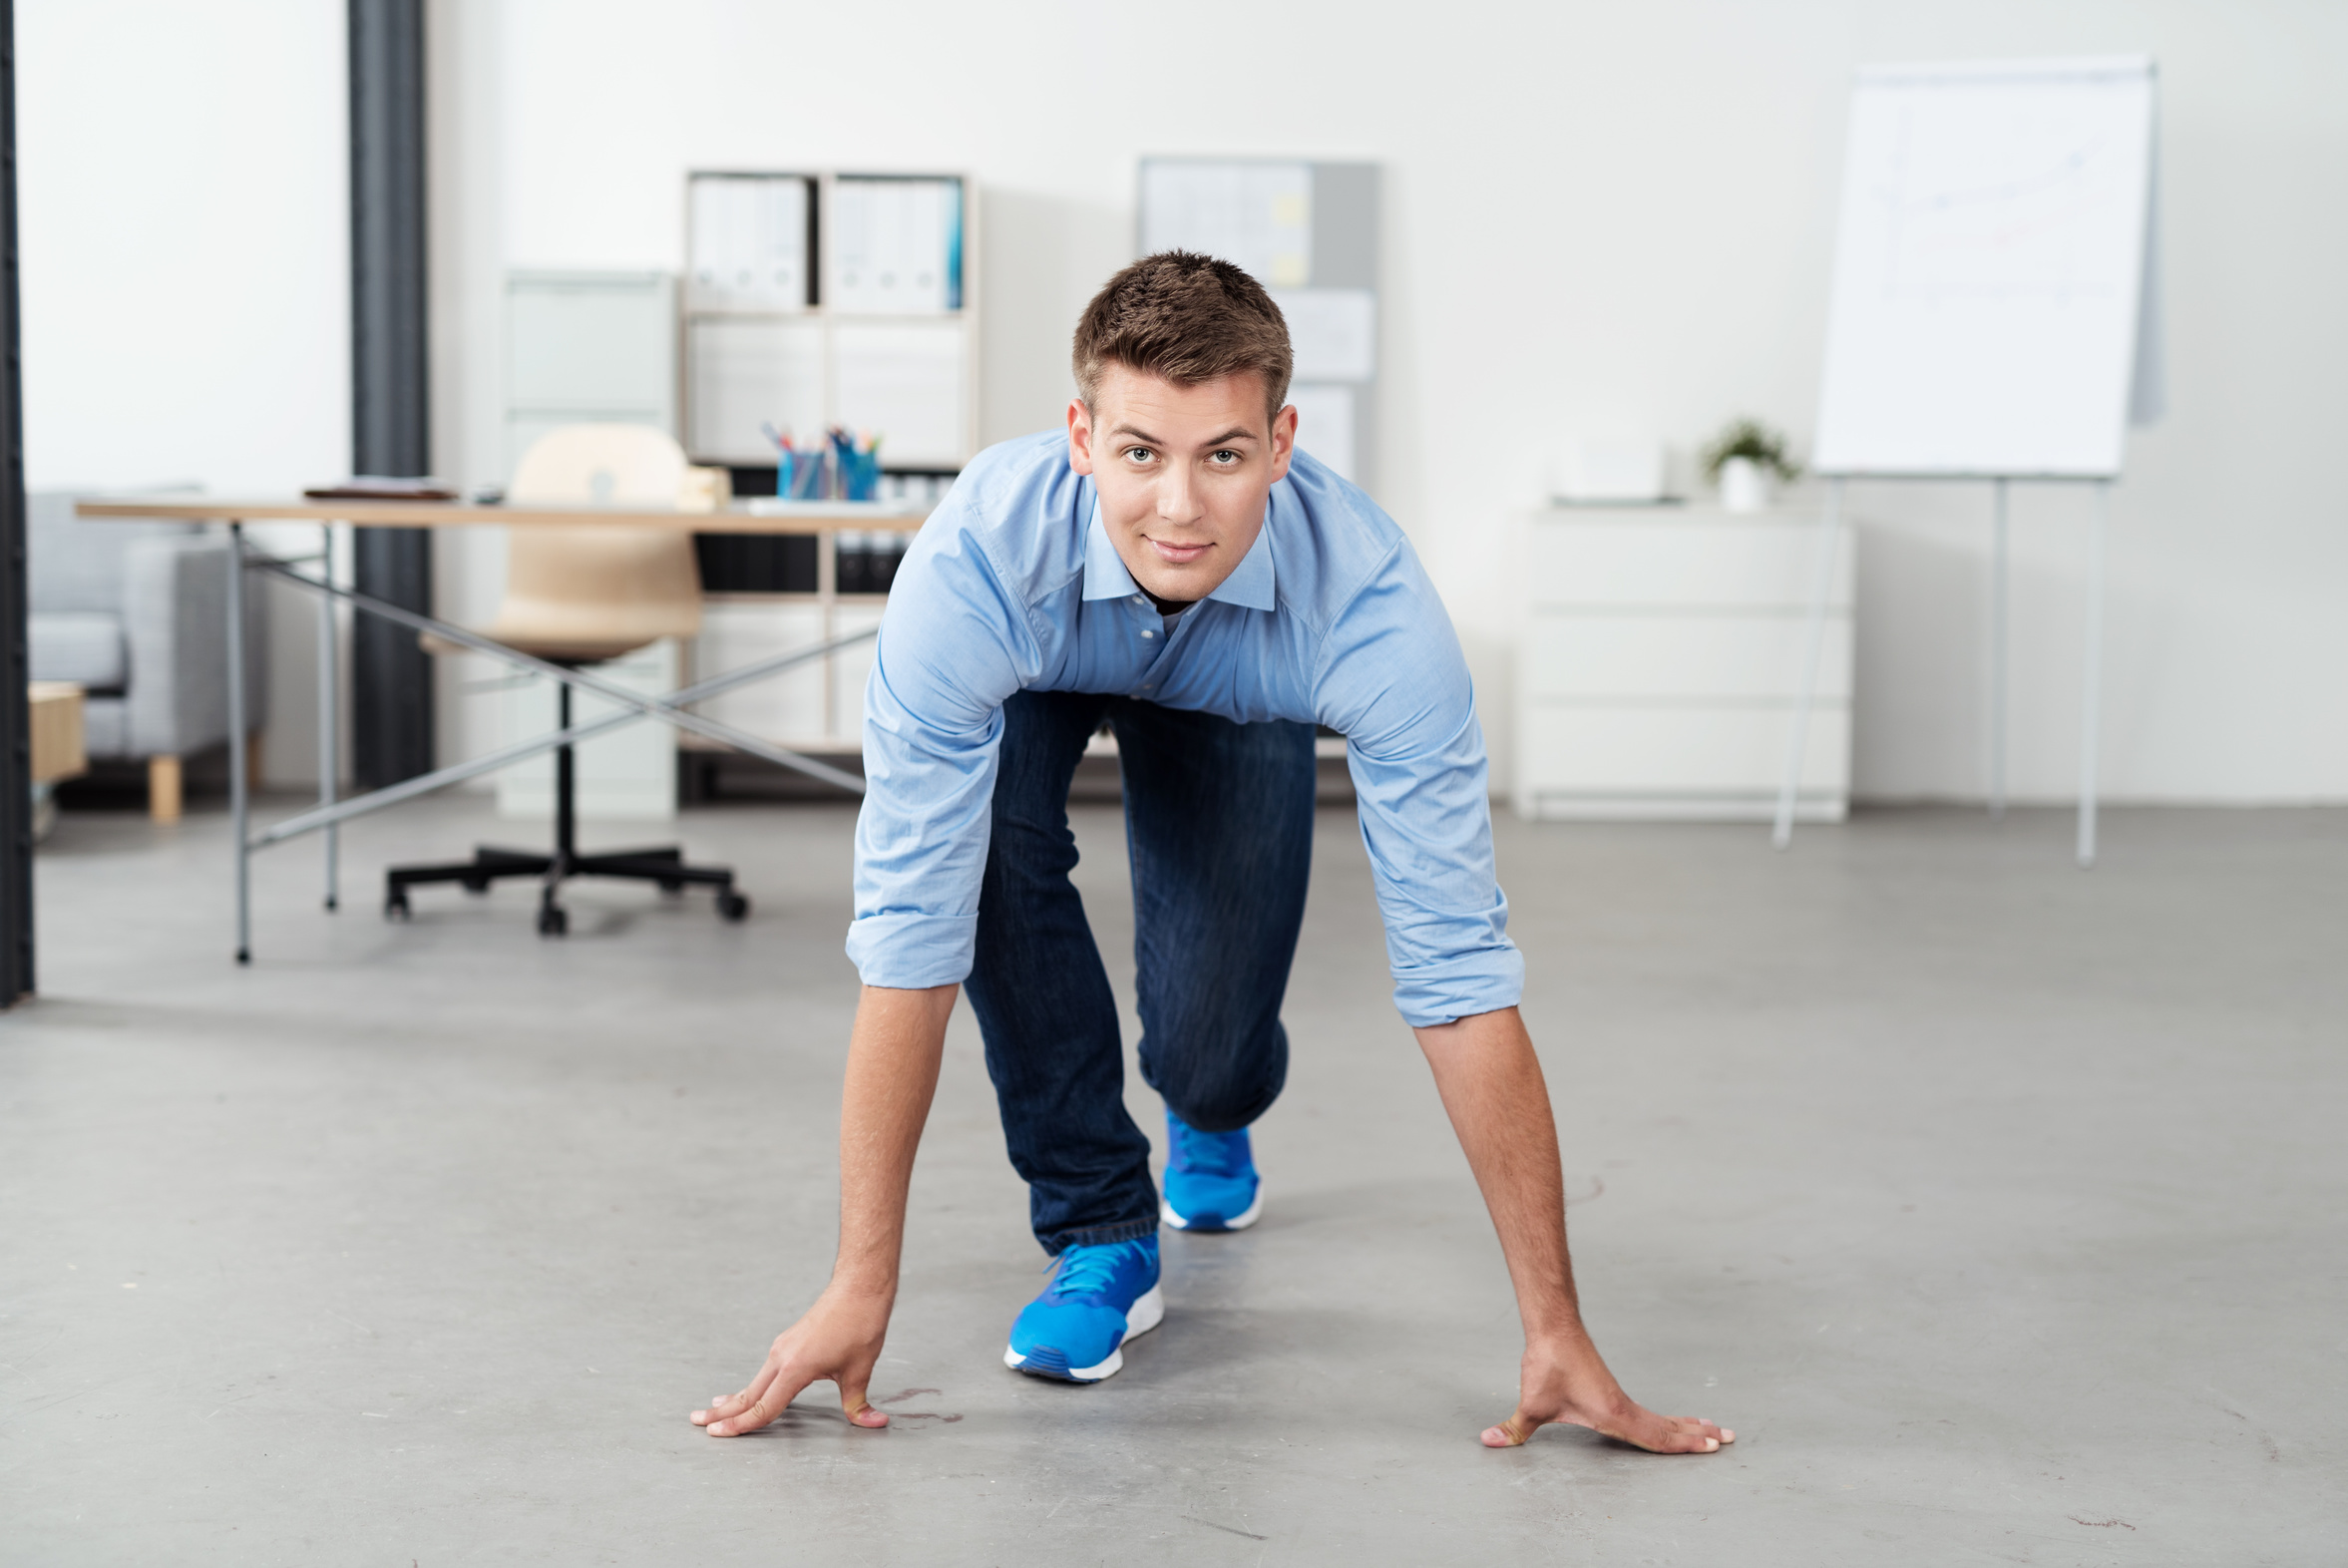 Health promotion at the workplace - physical wellbeing